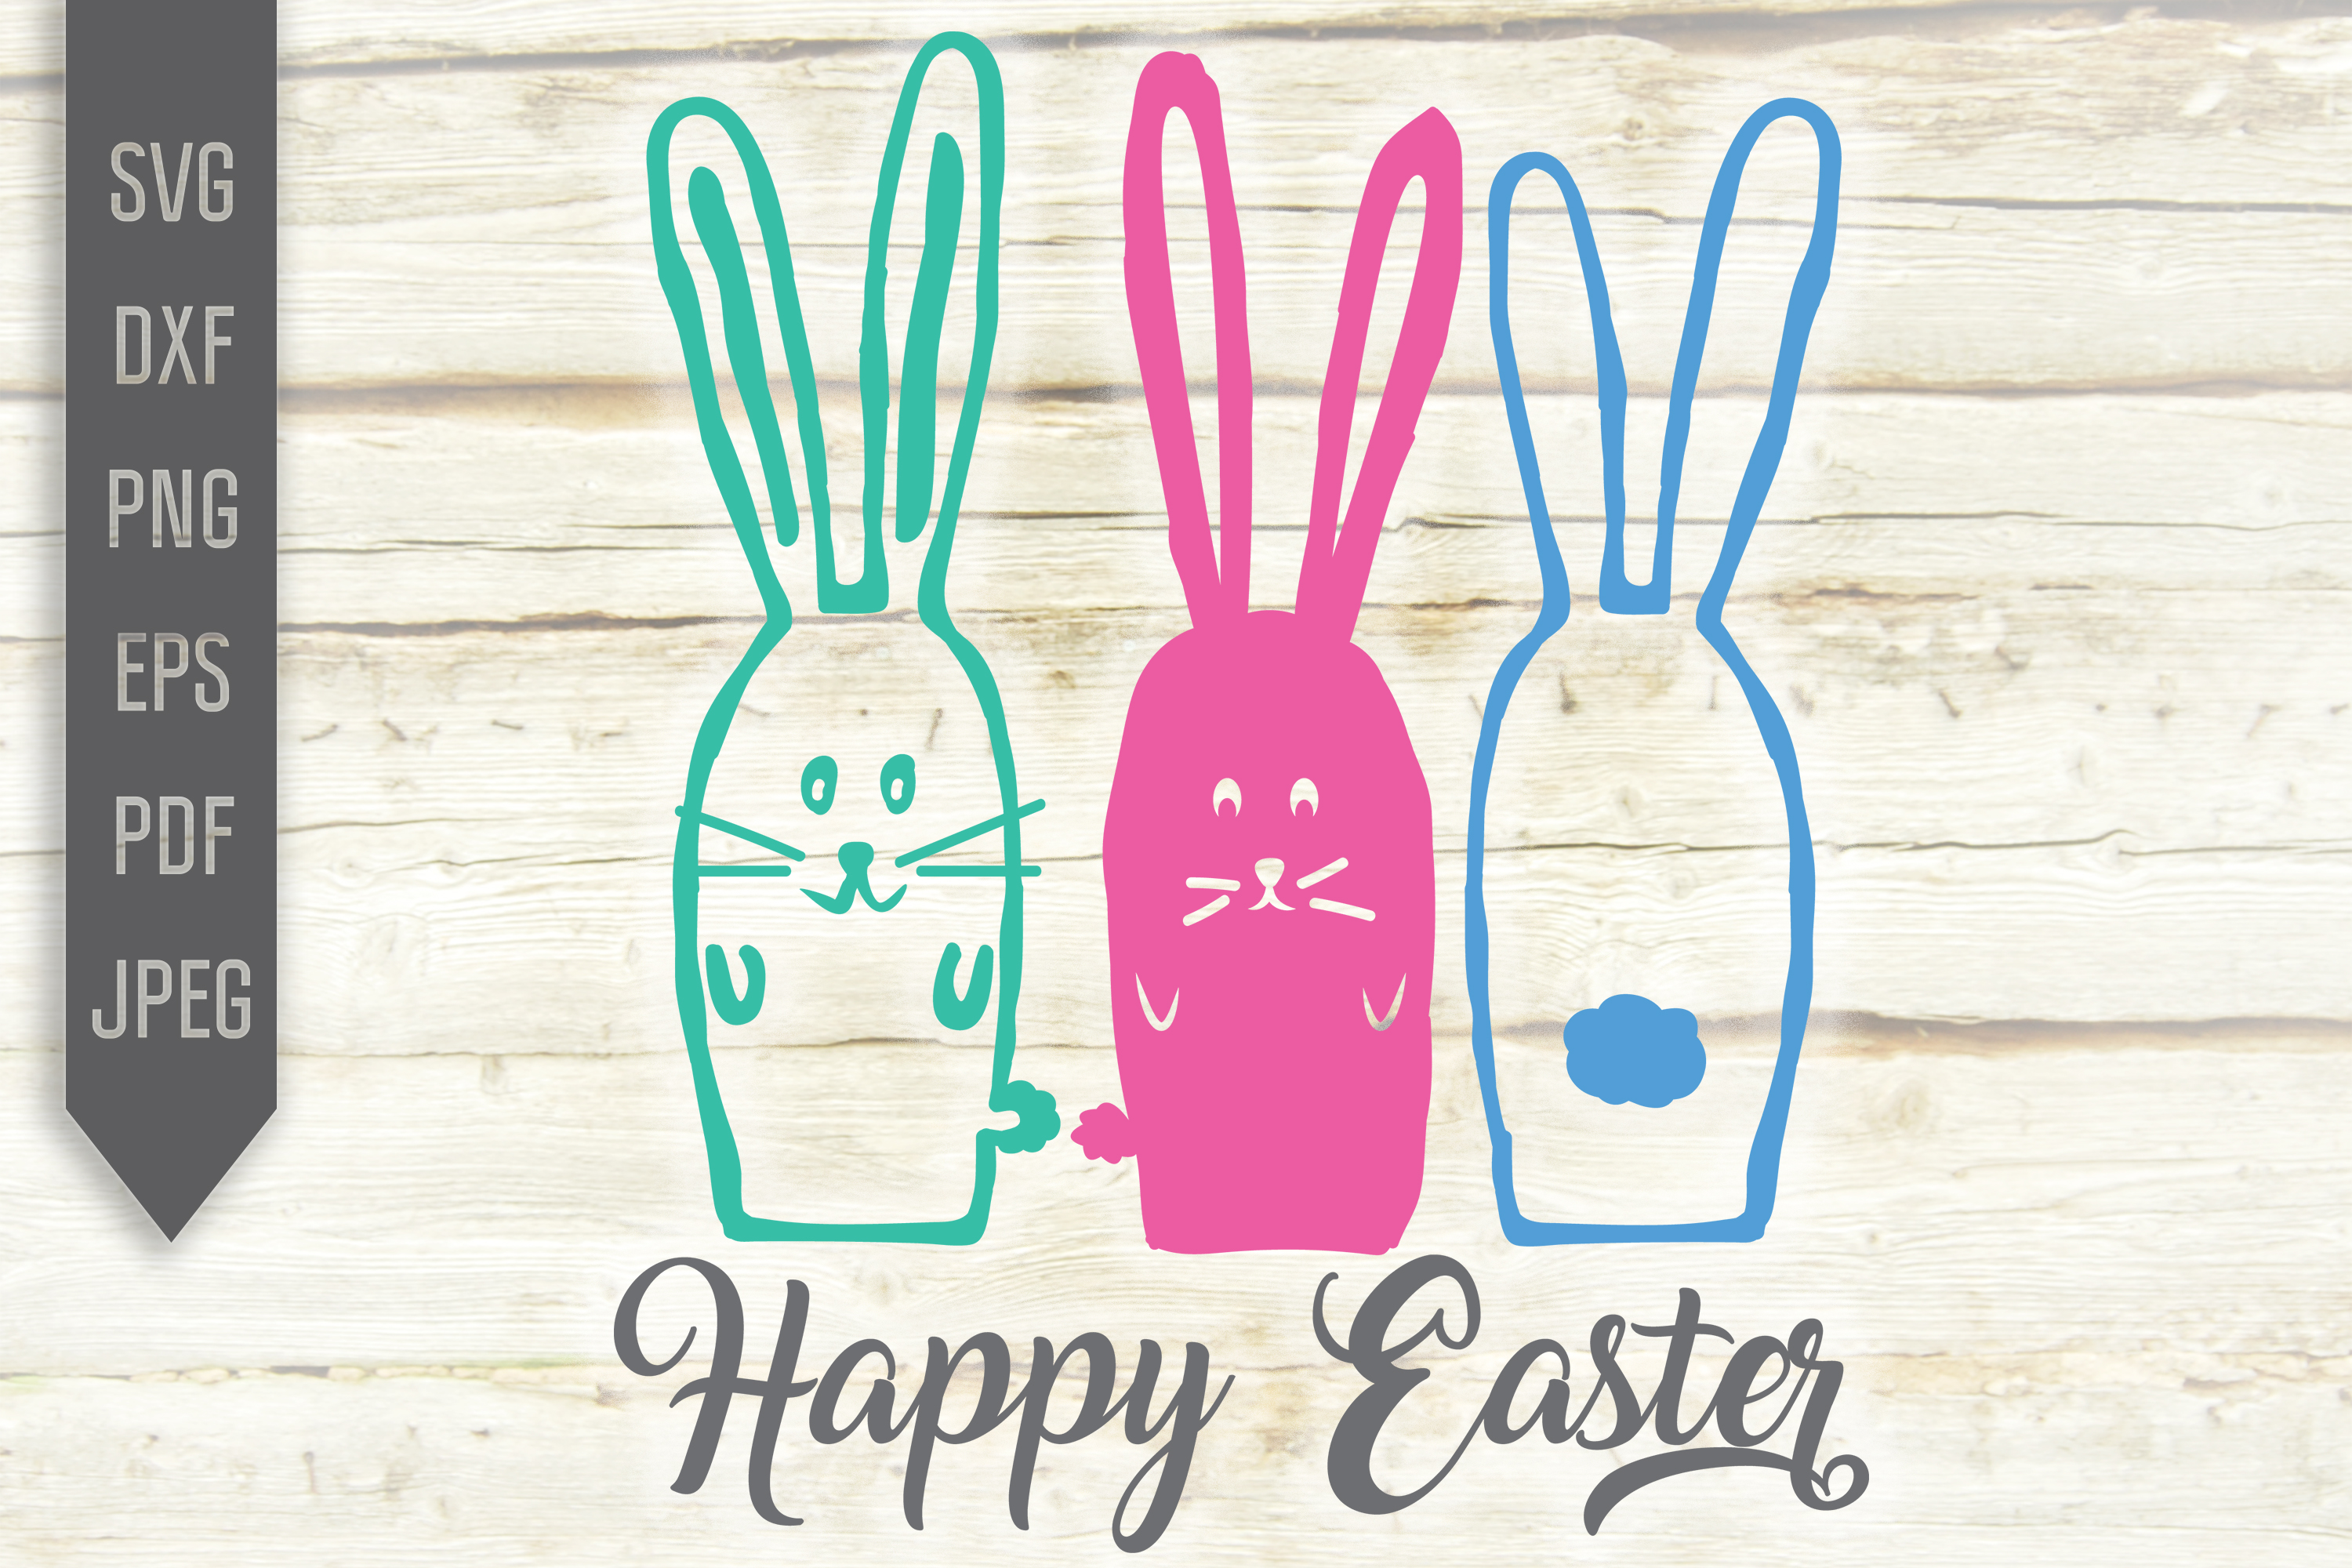 Download Free Three Easter Rabbits Happy Easter Graphic By Svglaboratory for Cricut Explore, Silhouette and other cutting machines.